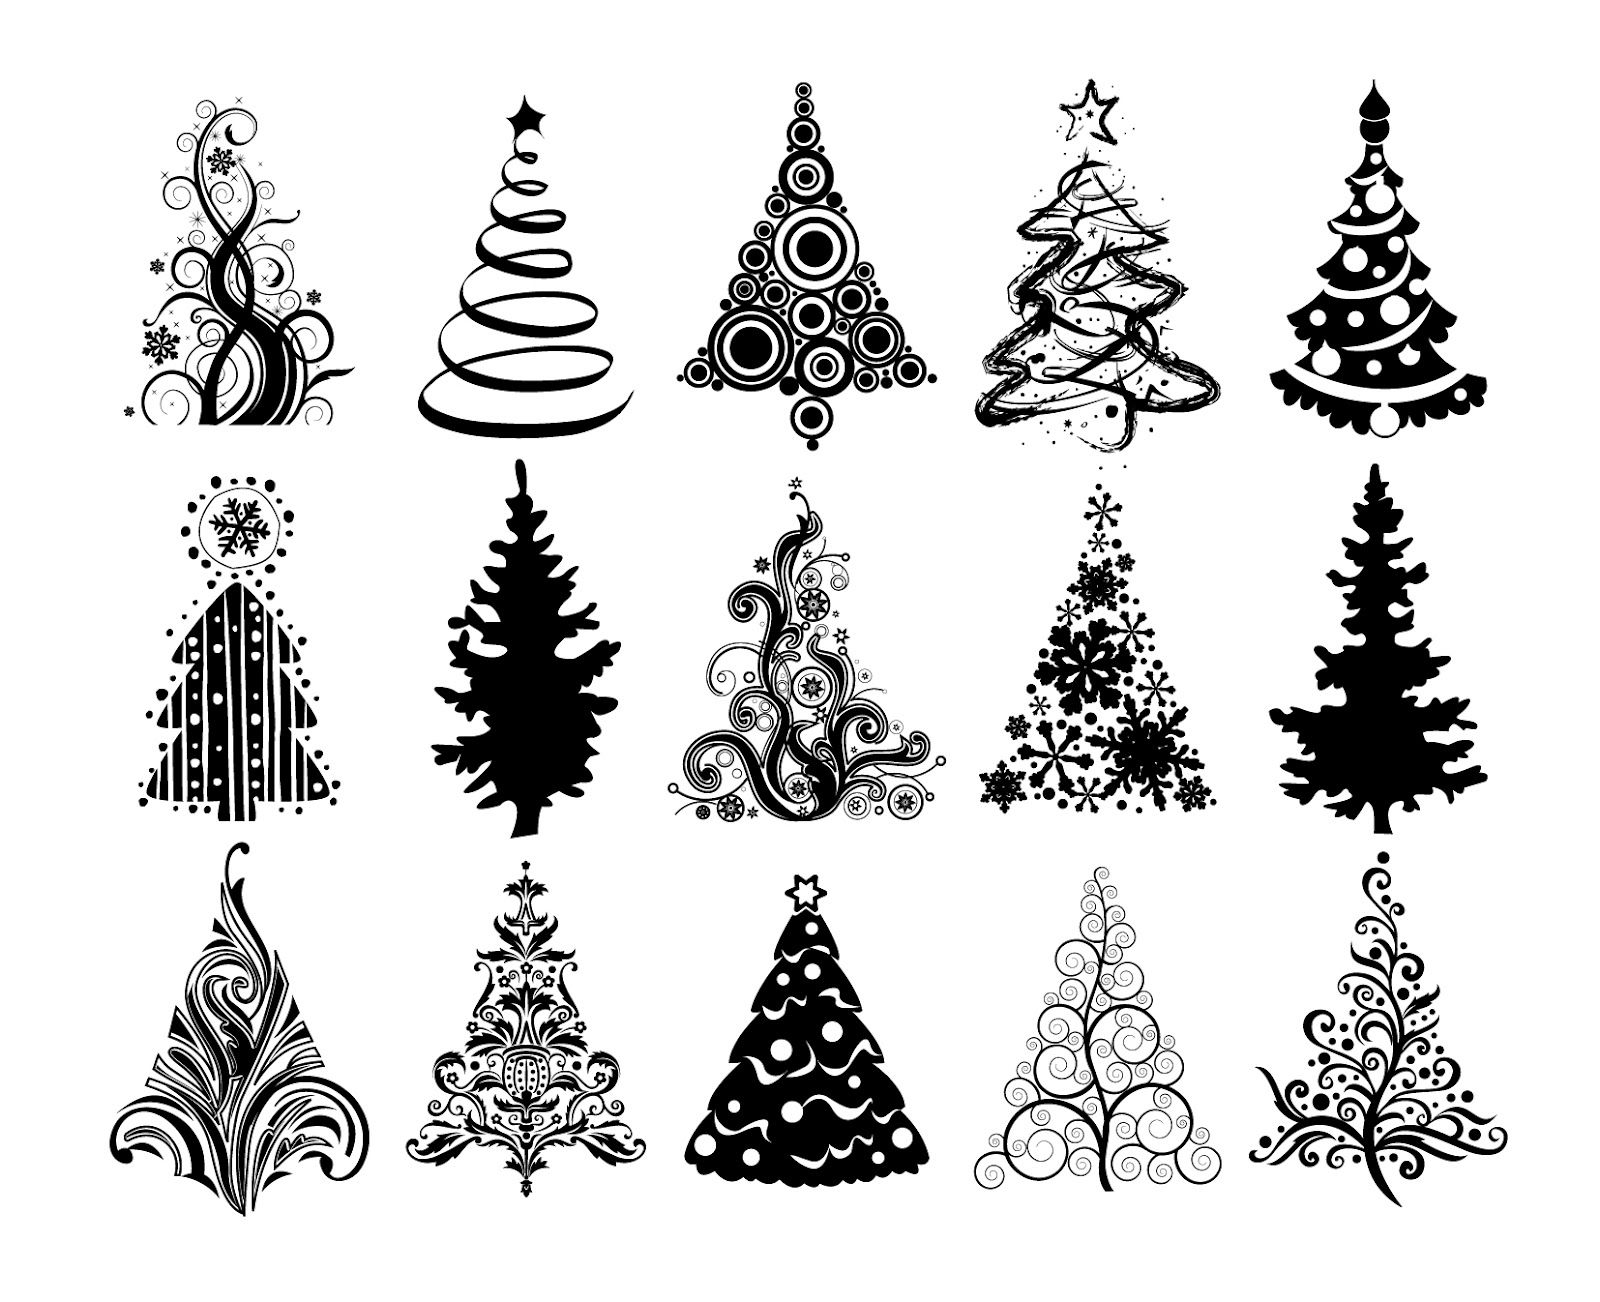 Black and white christmas tree clip art pictures to pin on pinterest - Christmas Tree Silhouette Clip Art Christmas Trees 1600 1302